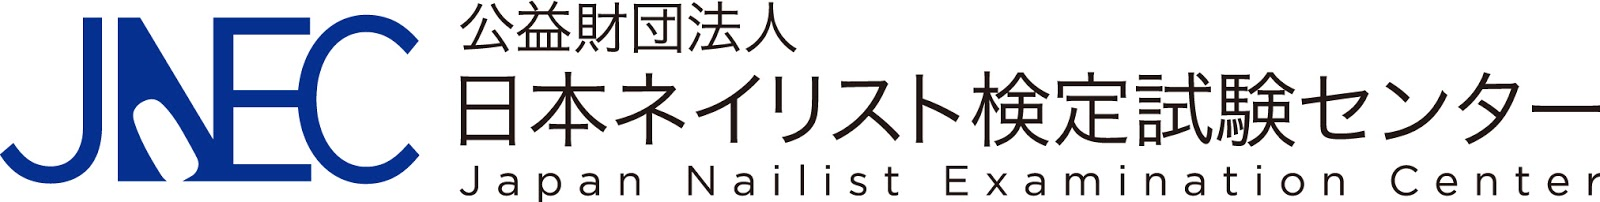 http://www.nail-kentei.or.jp/index.html